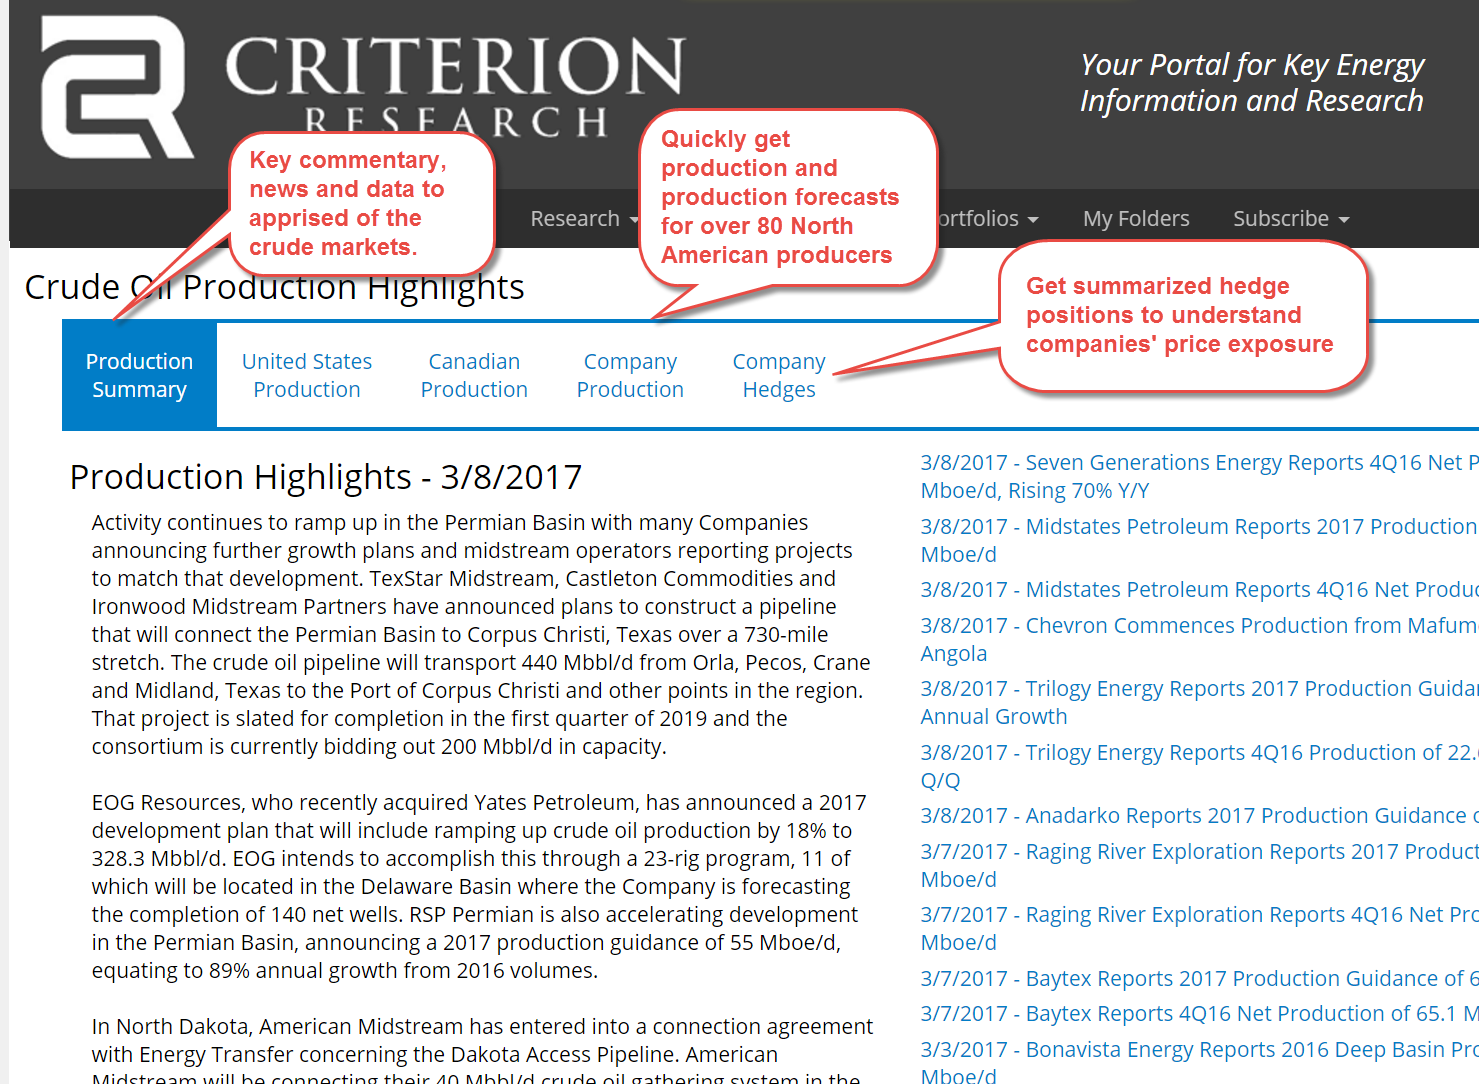 Criterion's Natural Gas Flows.  Key information, easily accessible.